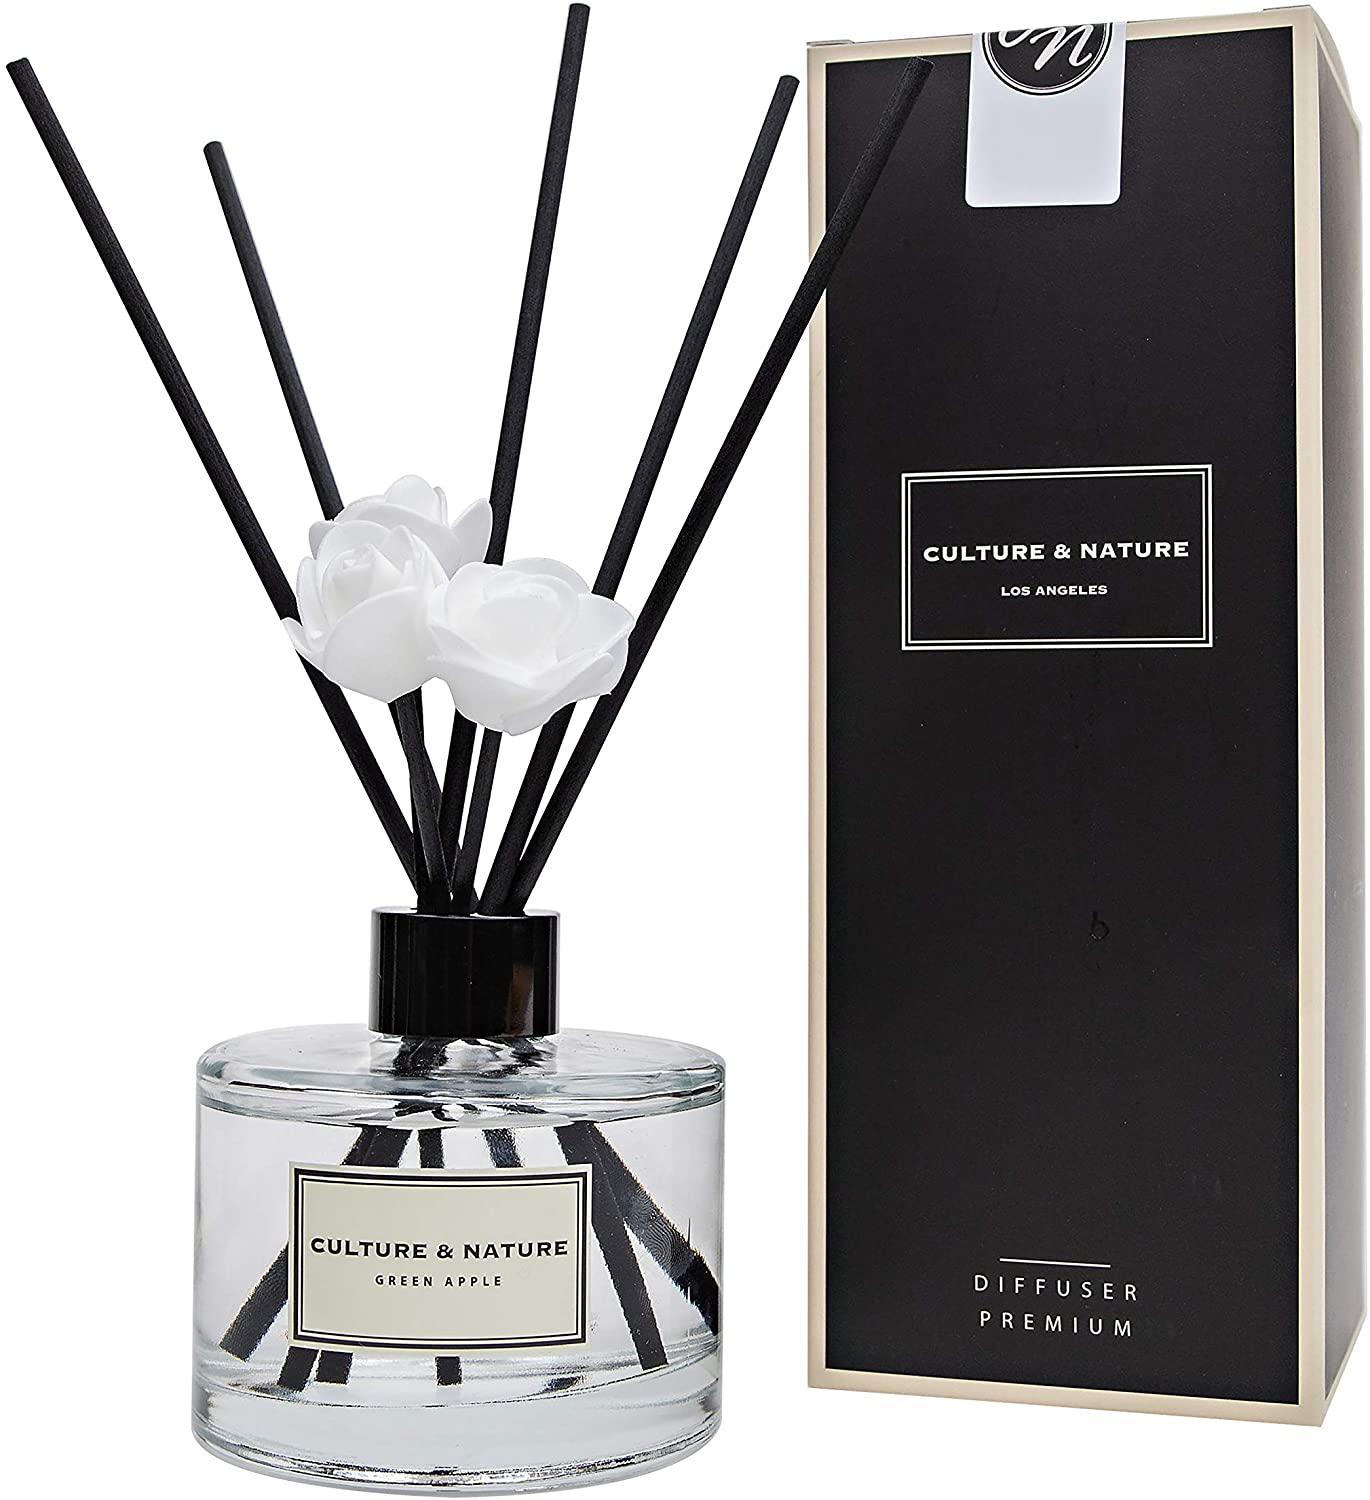 CULTURE & NATURE Reed Diffuser 6.7 oz ( 200ml ) Green Apple Scented Reed Diffuser Set